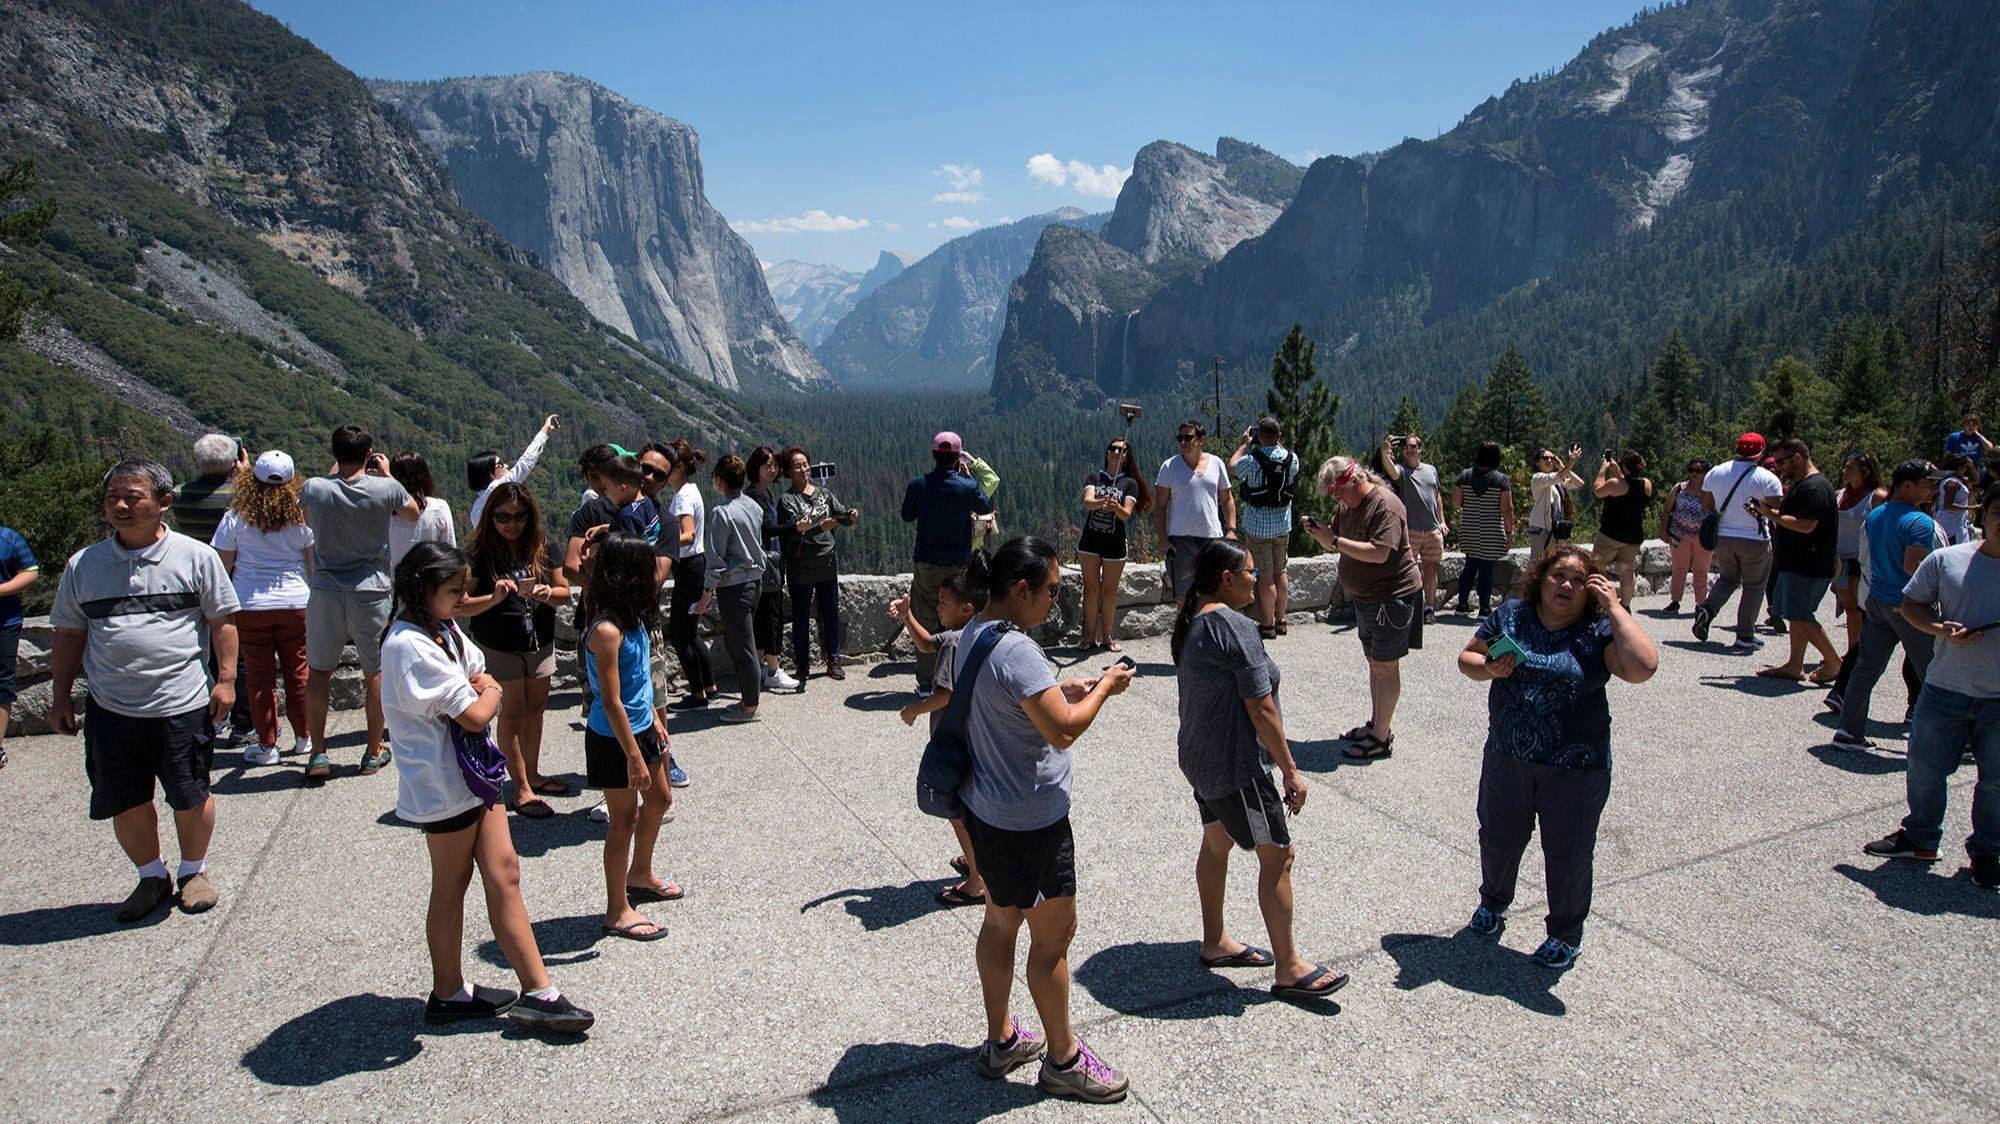 Visitors crowd Yosemite's Tunnel View overlook.